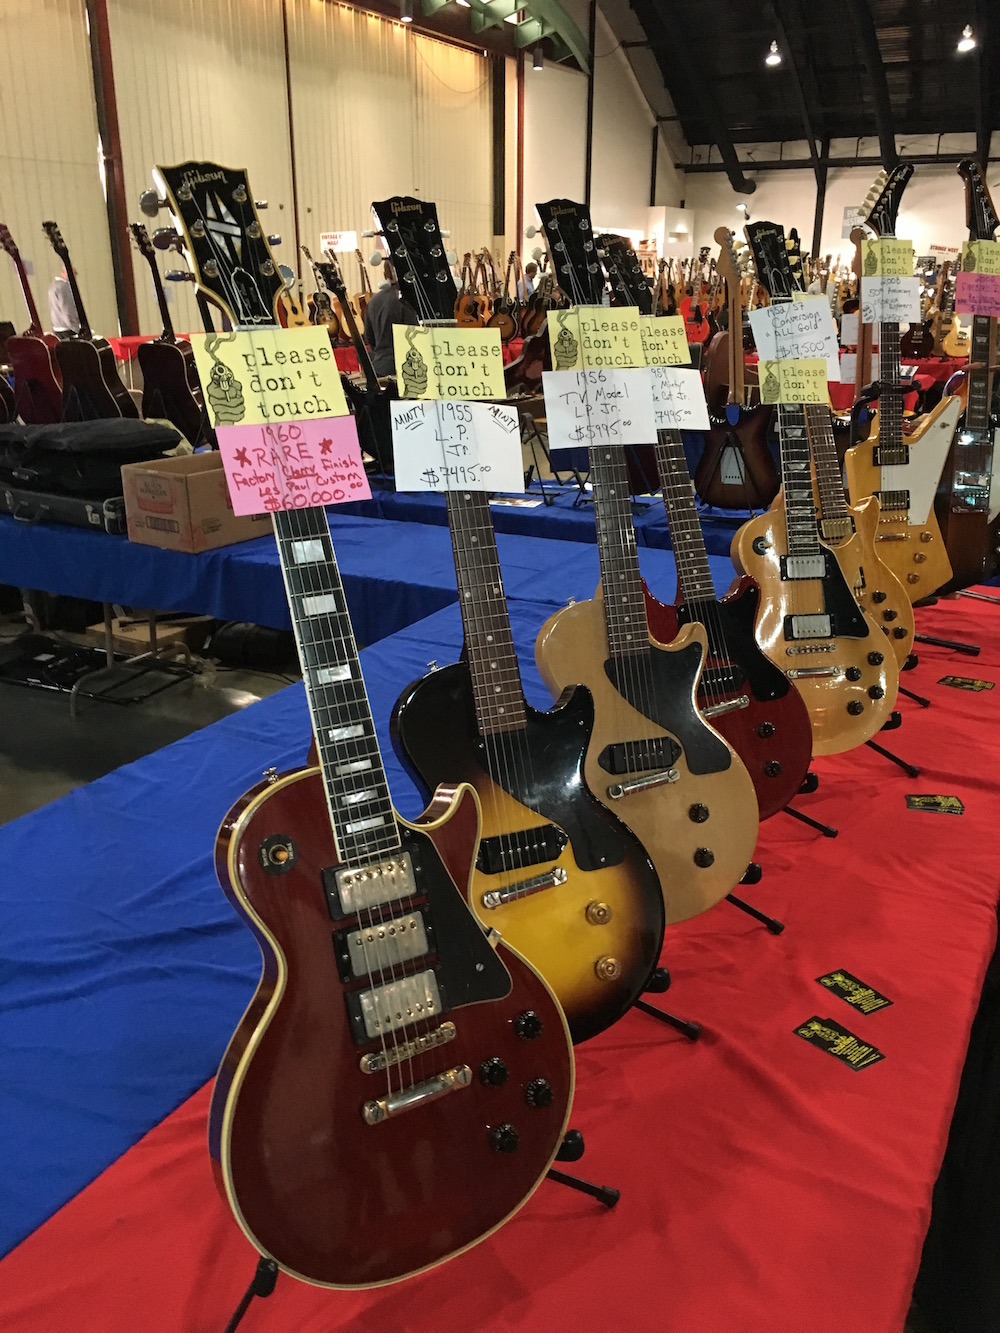 4 Amigos Guitar Show - Les Paul